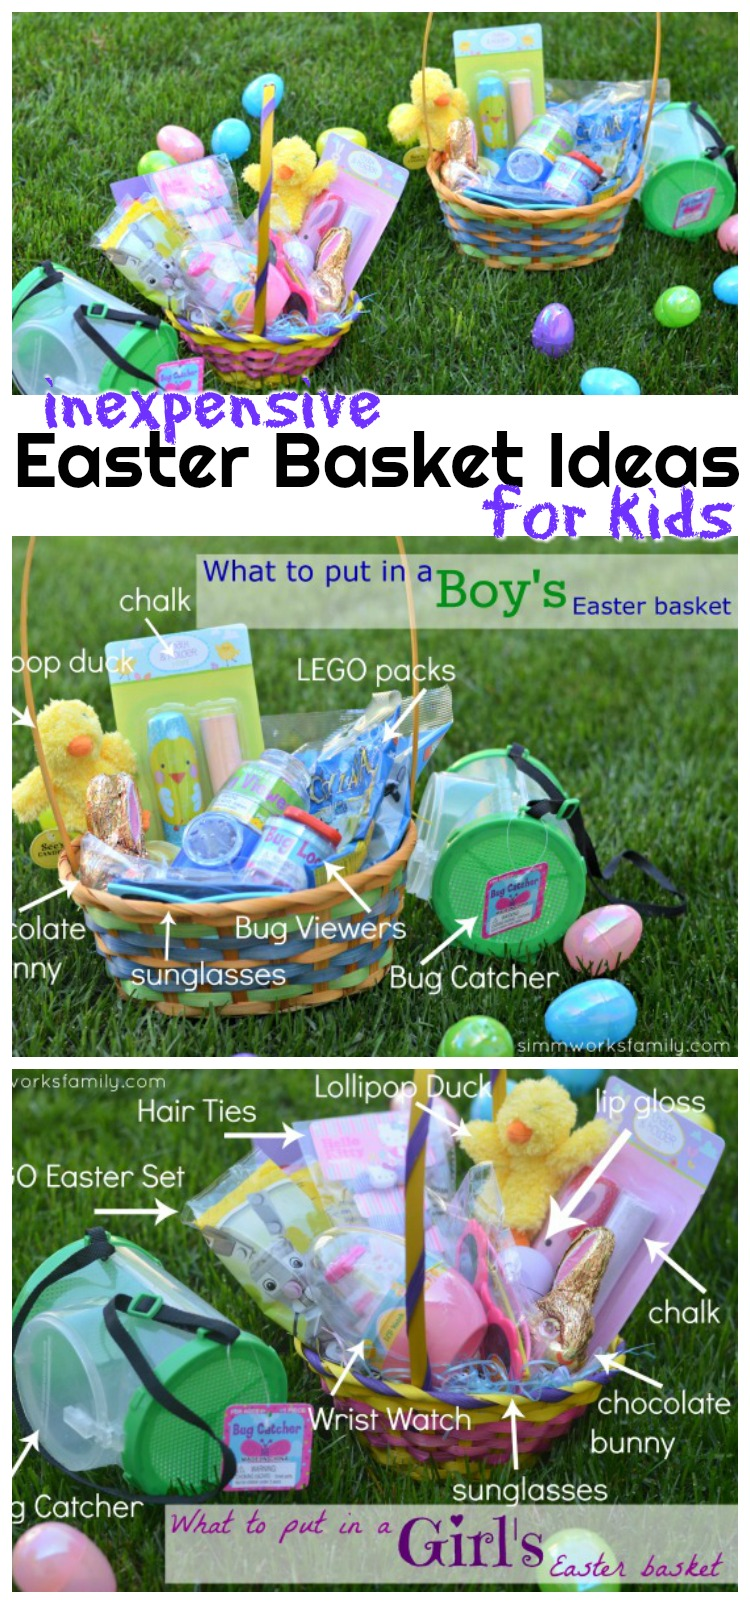 These inexpensive Easter basket ideas for kids won't break the bank! We take a simple approach to Easter baskets in our family and are sharing our tips and tricks with you.